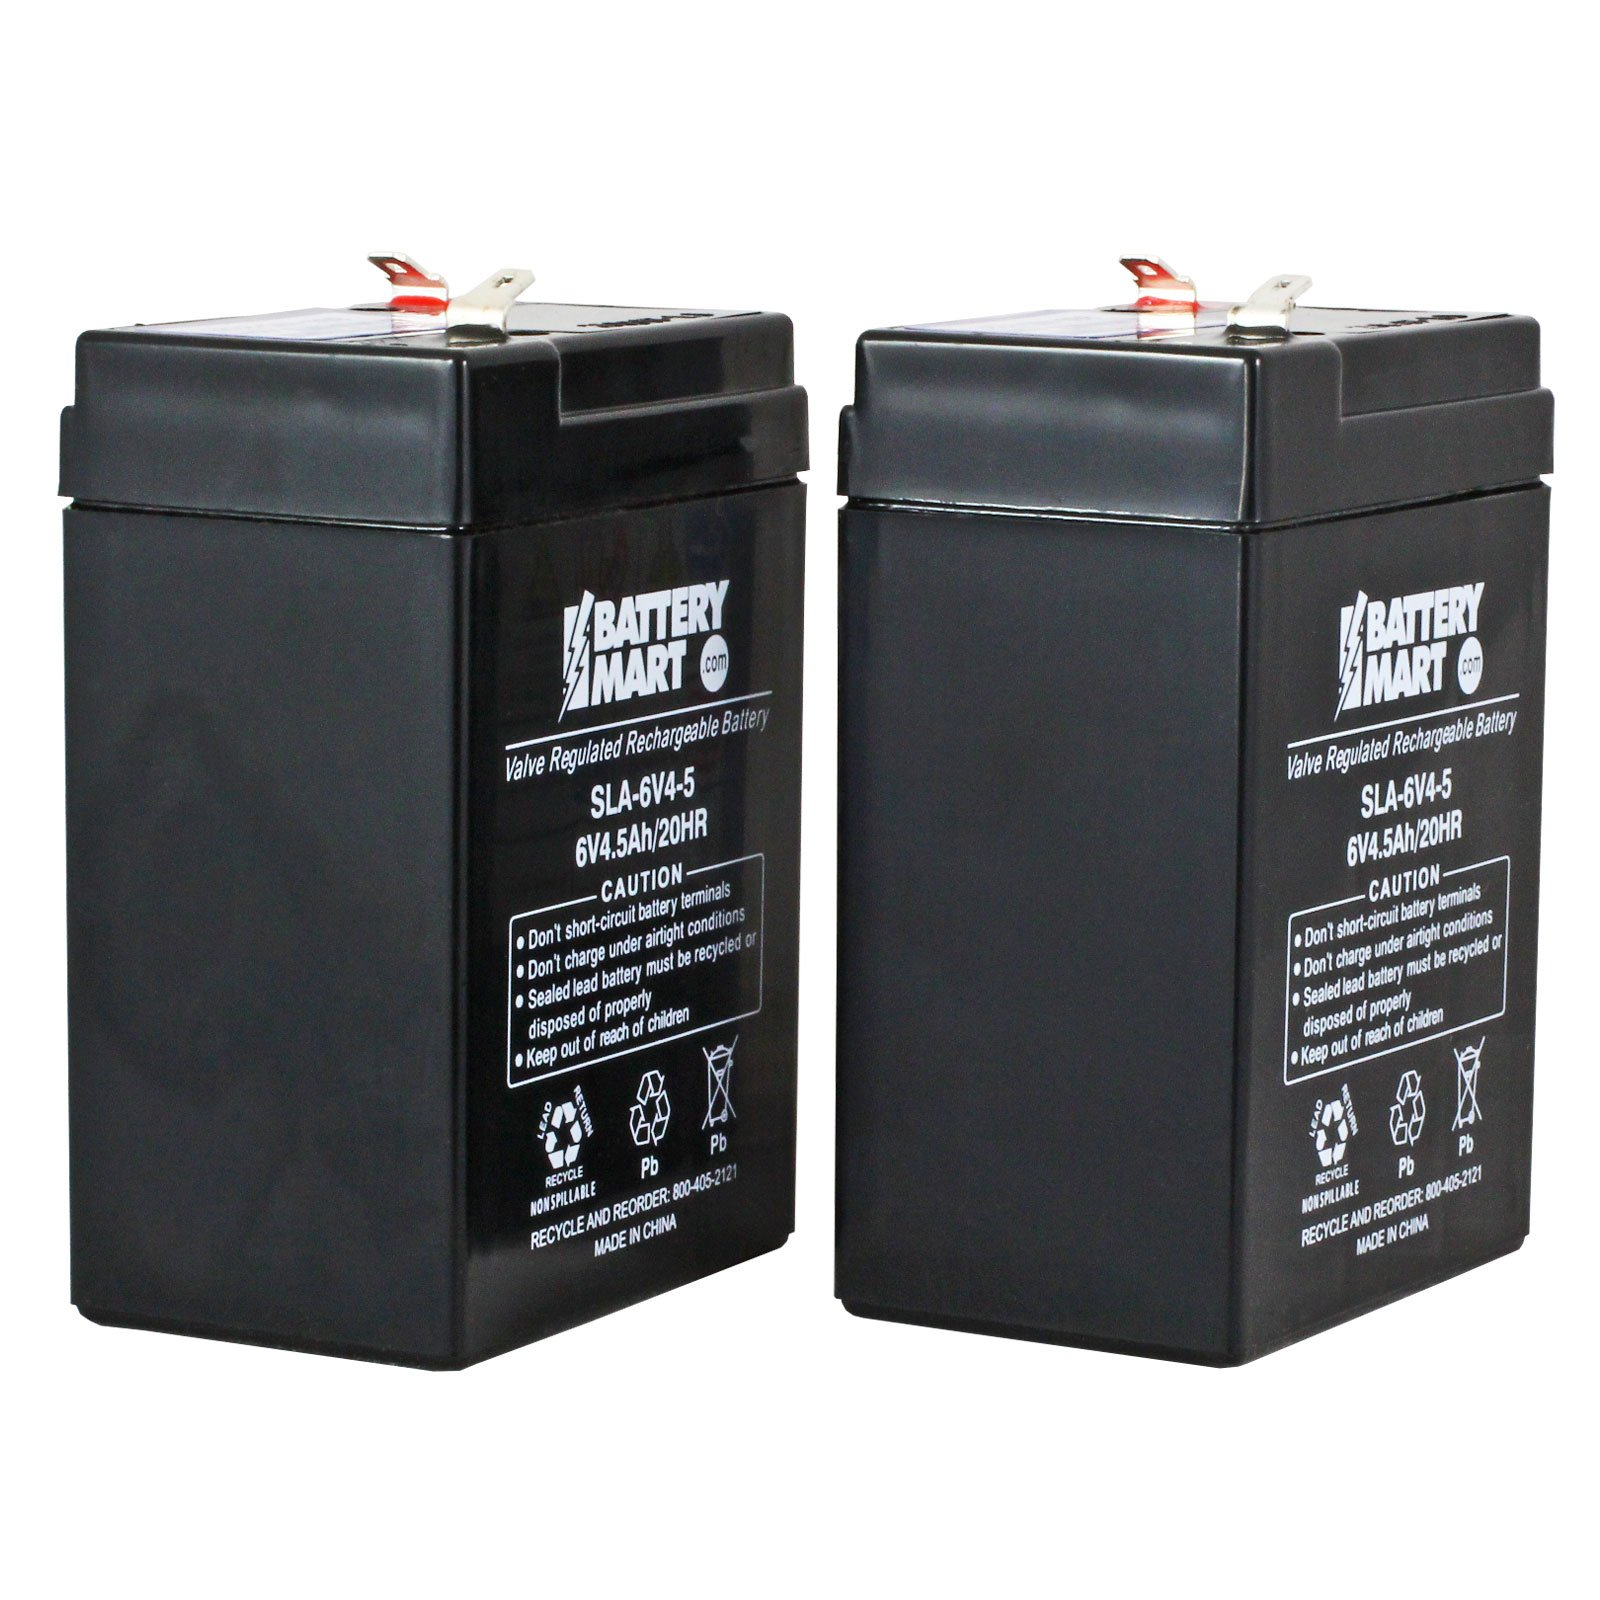 Batterie Aa 6 Volt 4 5 Ah Sealed Lead Acid Rechargeable Battery 2